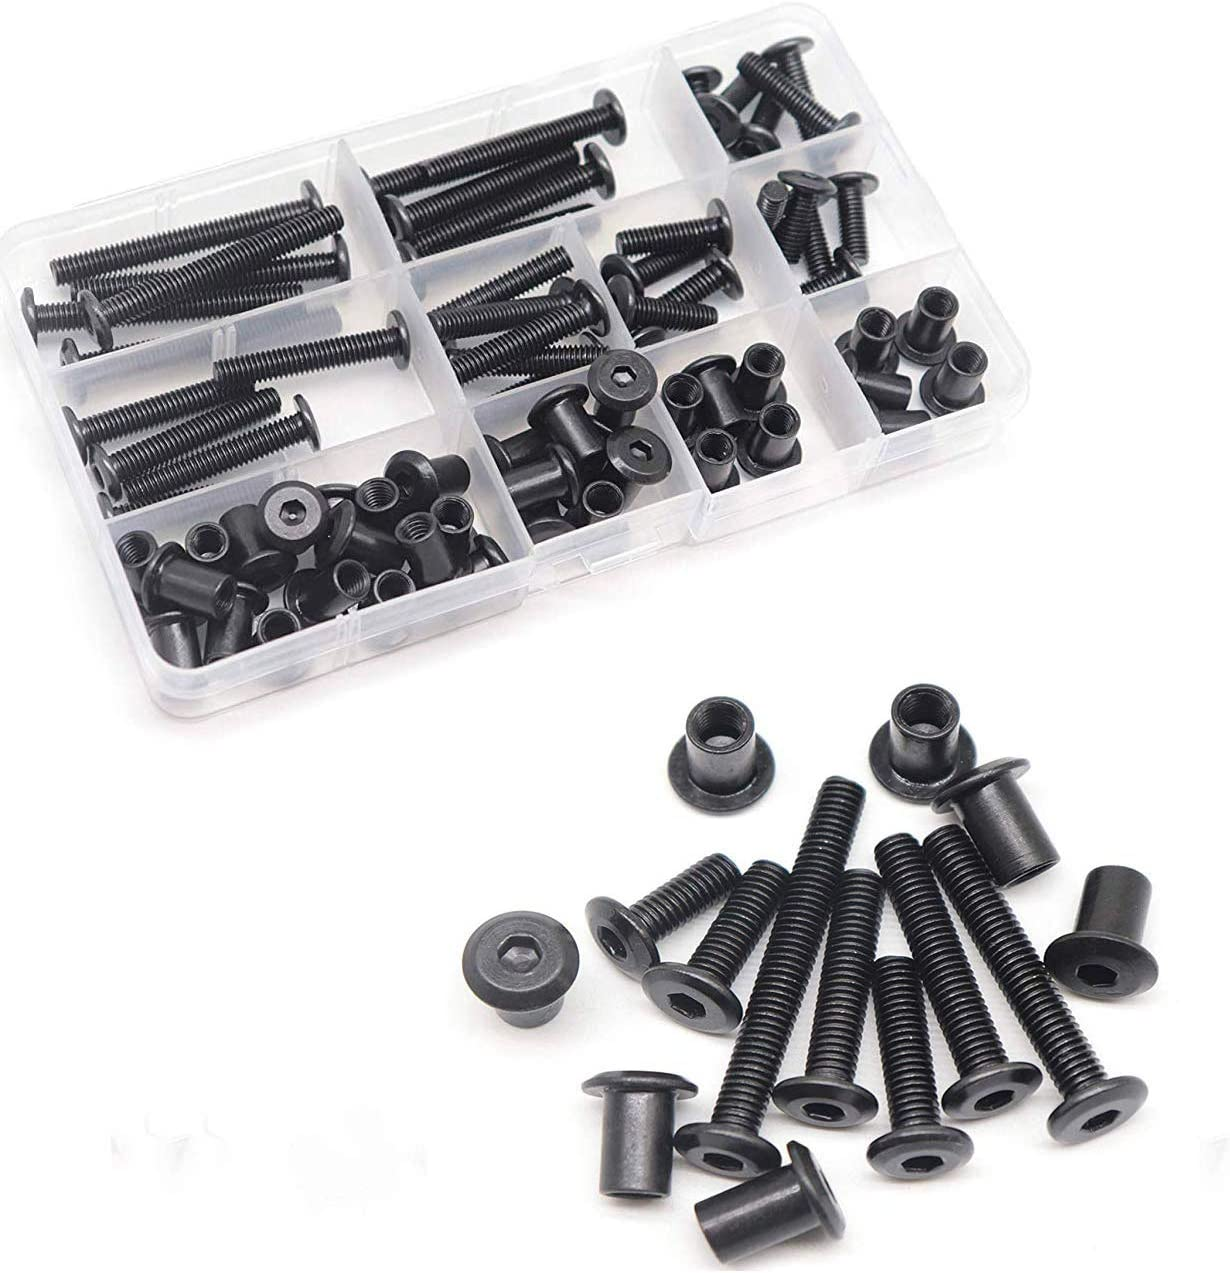 FPVKing 35-Set M6 Hex Drive Socket Cap Bolts Kit, Black Socket Cap Screws Barrel Bolts Nuts Kit for Furniture Bed Crib, M6x15mm/ 20mm/ 25mm/ 30mm/ 35mm/ 40mm/ 50mm